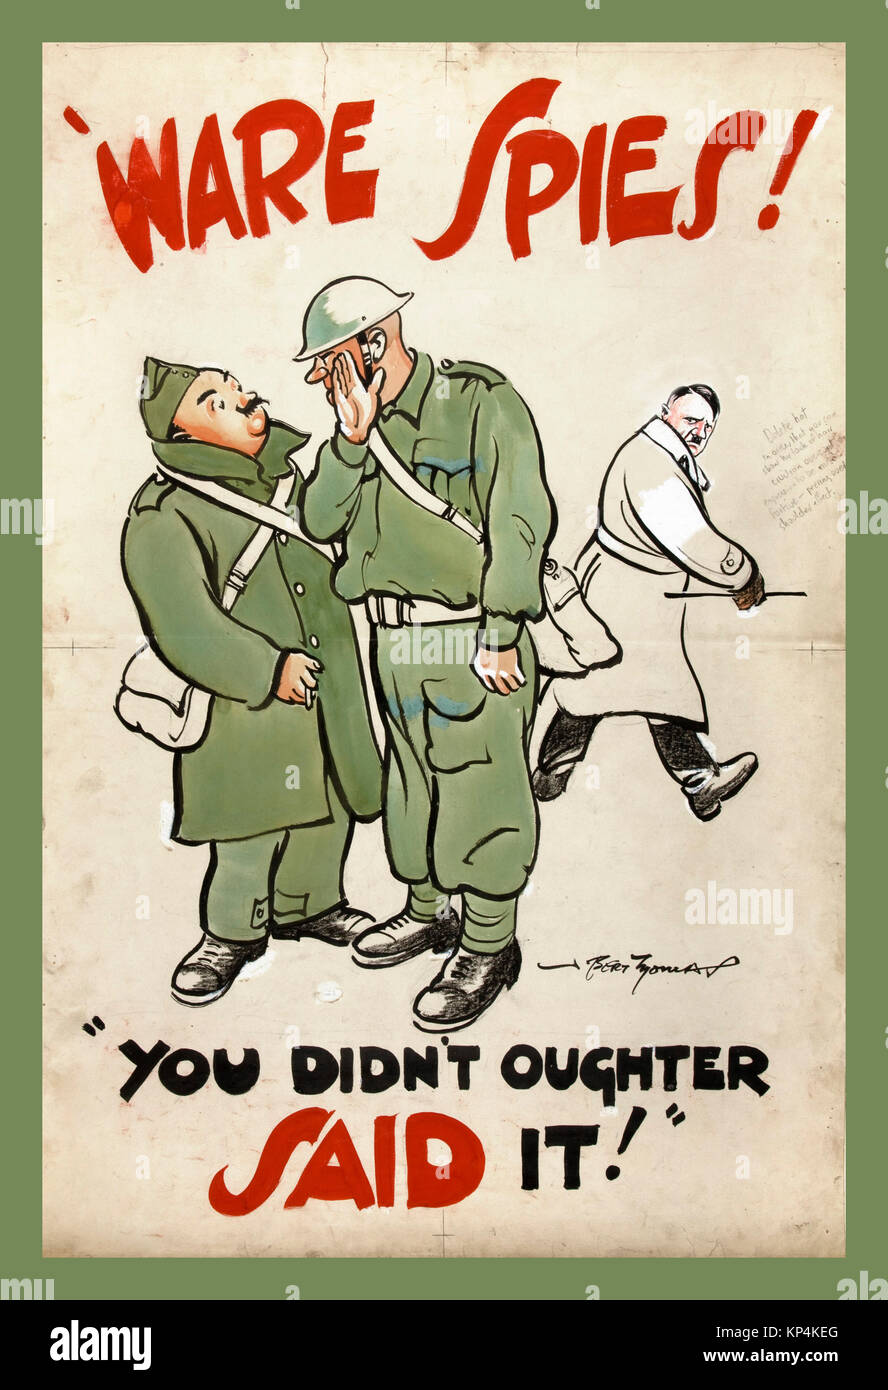 1940s WW2 UK British Propaganda Poster Featuring Tommies Soldiers For Anti Rumour And Careless